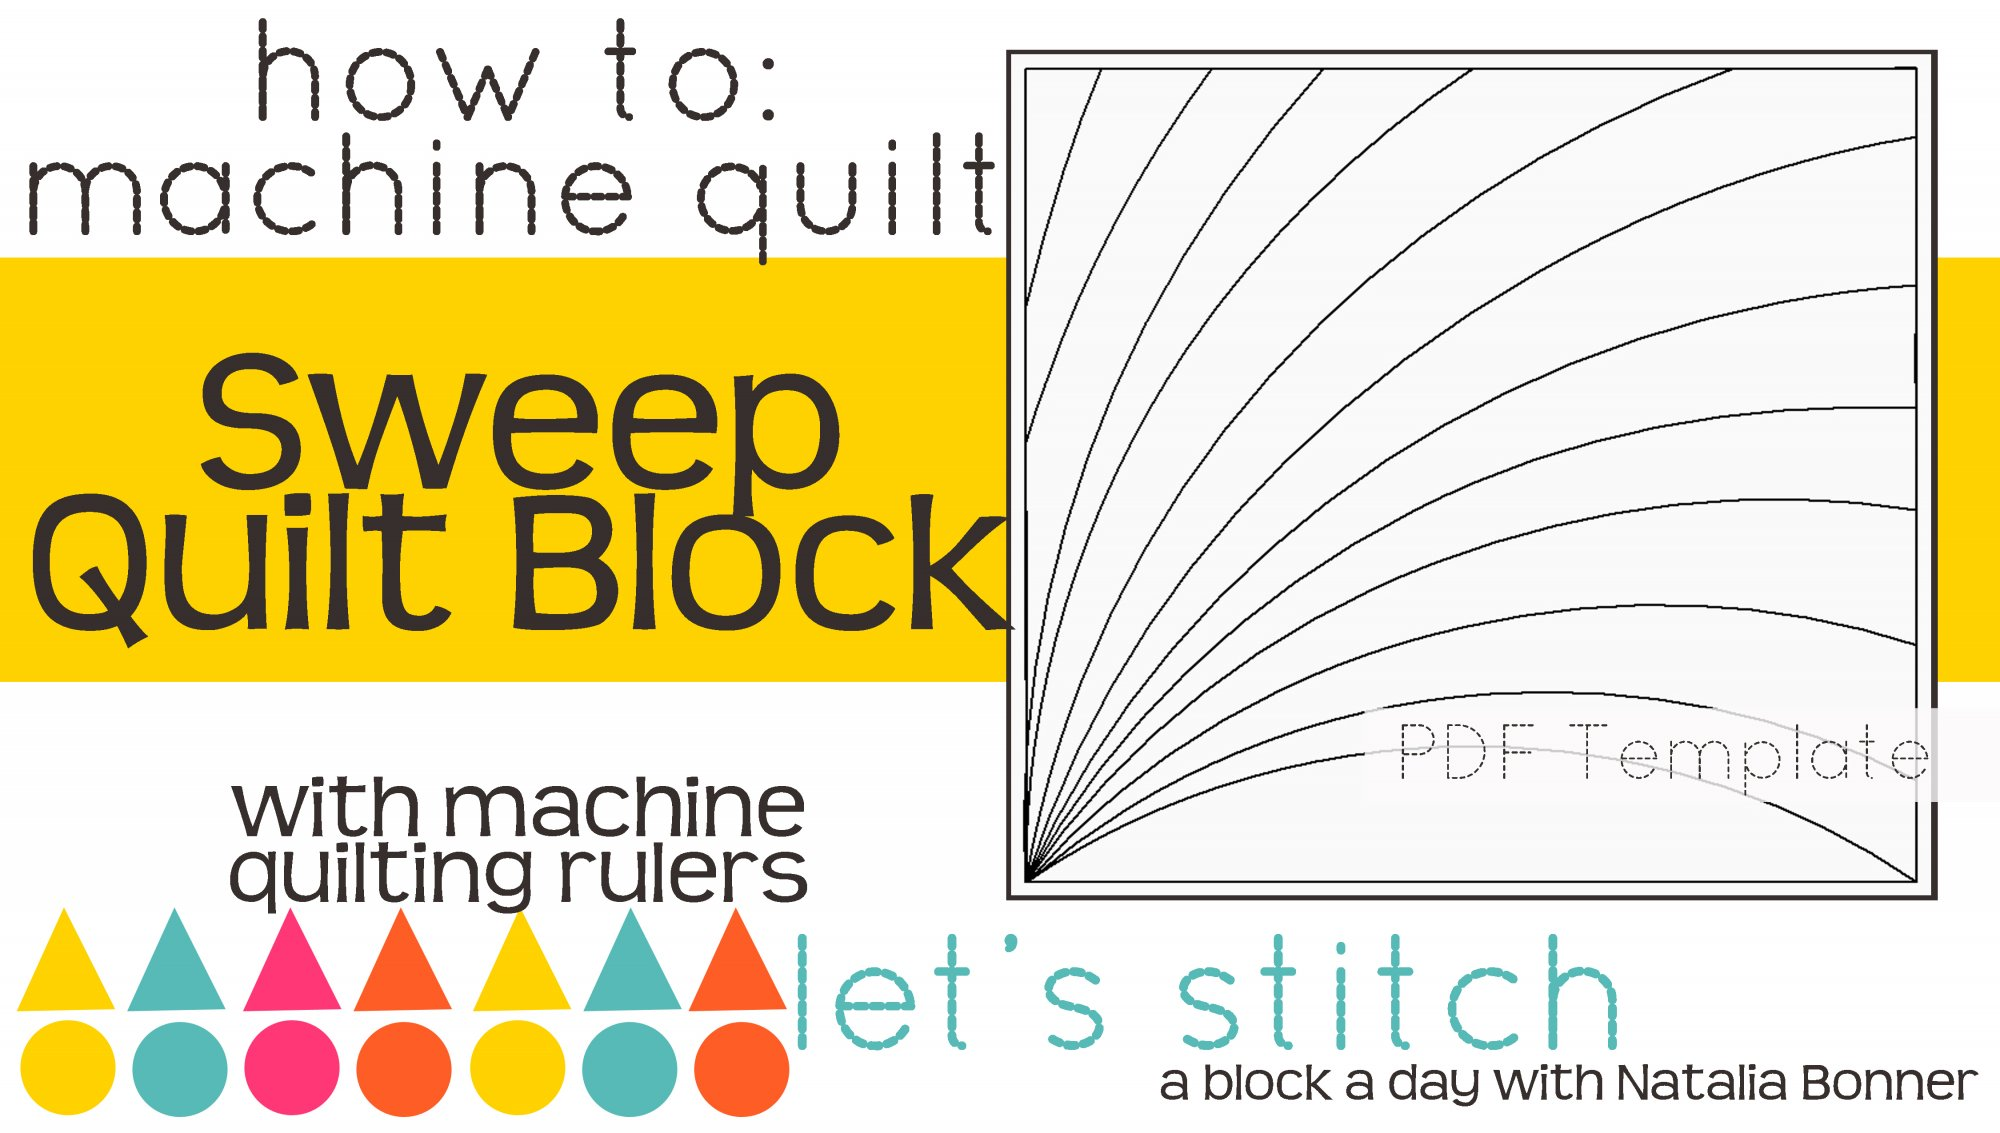 Let's Stitch - A Block a Day With Natalia Bonner - PDF - Sweep